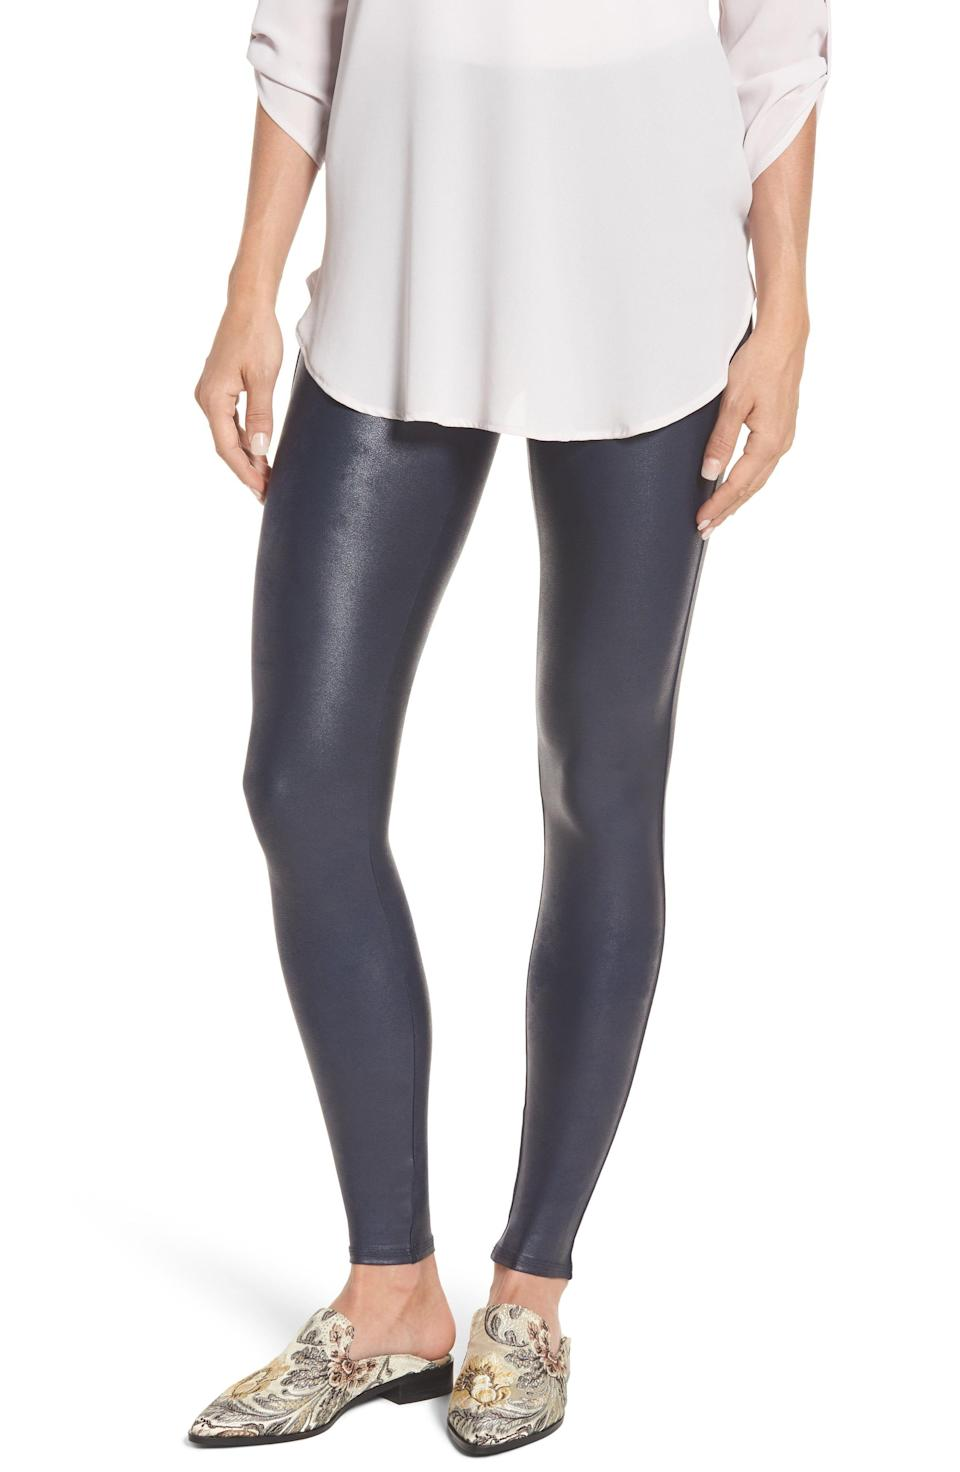 """<p><strong>SPANX</strong></p><p>nordstrom.com</p><p><strong>$98.00</strong></p><p><a href=""""https://go.redirectingat.com?id=74968X1596630&url=https%3A%2F%2Fwww.nordstrom.com%2Fs%2Fspanx-faux-leather-leggings-regular-petite-plus-size%2F3828364&sref=https%3A%2F%2Fwww.goodhousekeeping.com%2Fclothing%2Fg32884290%2Fbest-leggings%2F"""" rel=""""nofollow noopener"""" target=""""_blank"""" data-ylk=""""slk:Shop Now"""" class=""""link rapid-noclick-resp"""">Shop Now</a></p><p>Not only are these leggings on trend with their shiny, leather look, they're also<strong> super comfortable and incredibly flattering thanks to their stretchy and smoothing waistband. </strong>And unlike true leather leggings, they're machine washable for easy care. Not surprisingly, they're also one of the most popular leggings on the market, and they're available in <a href=""""https://go.redirectingat.com?id=74968X1596630&url=https%3A%2F%2Fwww.spanx.com%2Fleggings%2Ffaux-leather%2Ffaux-leather-leggings&sref=https%3A%2F%2Fwww.goodhousekeeping.com%2Fclothing%2Fg32884290%2Fbest-leggings%2F"""" rel=""""nofollow noopener"""" target=""""_blank"""" data-ylk=""""slk:plus and petite sizes"""" class=""""link rapid-noclick-resp"""">plus and petite sizes</a>.</p><p><strong>RELATED</strong>: <a href=""""http://www.goodhousekeeping.com/clothing/a28181625/spanx-faux-leather-leggings-review/"""" rel=""""nofollow noopener"""" target=""""_blank"""" data-ylk=""""slk:Are Spanx's Leather Leggings Worth the Hype?"""" class=""""link rapid-noclick-resp"""">Are Spanx's Leather Leggings Worth the Hype?</a></p>"""